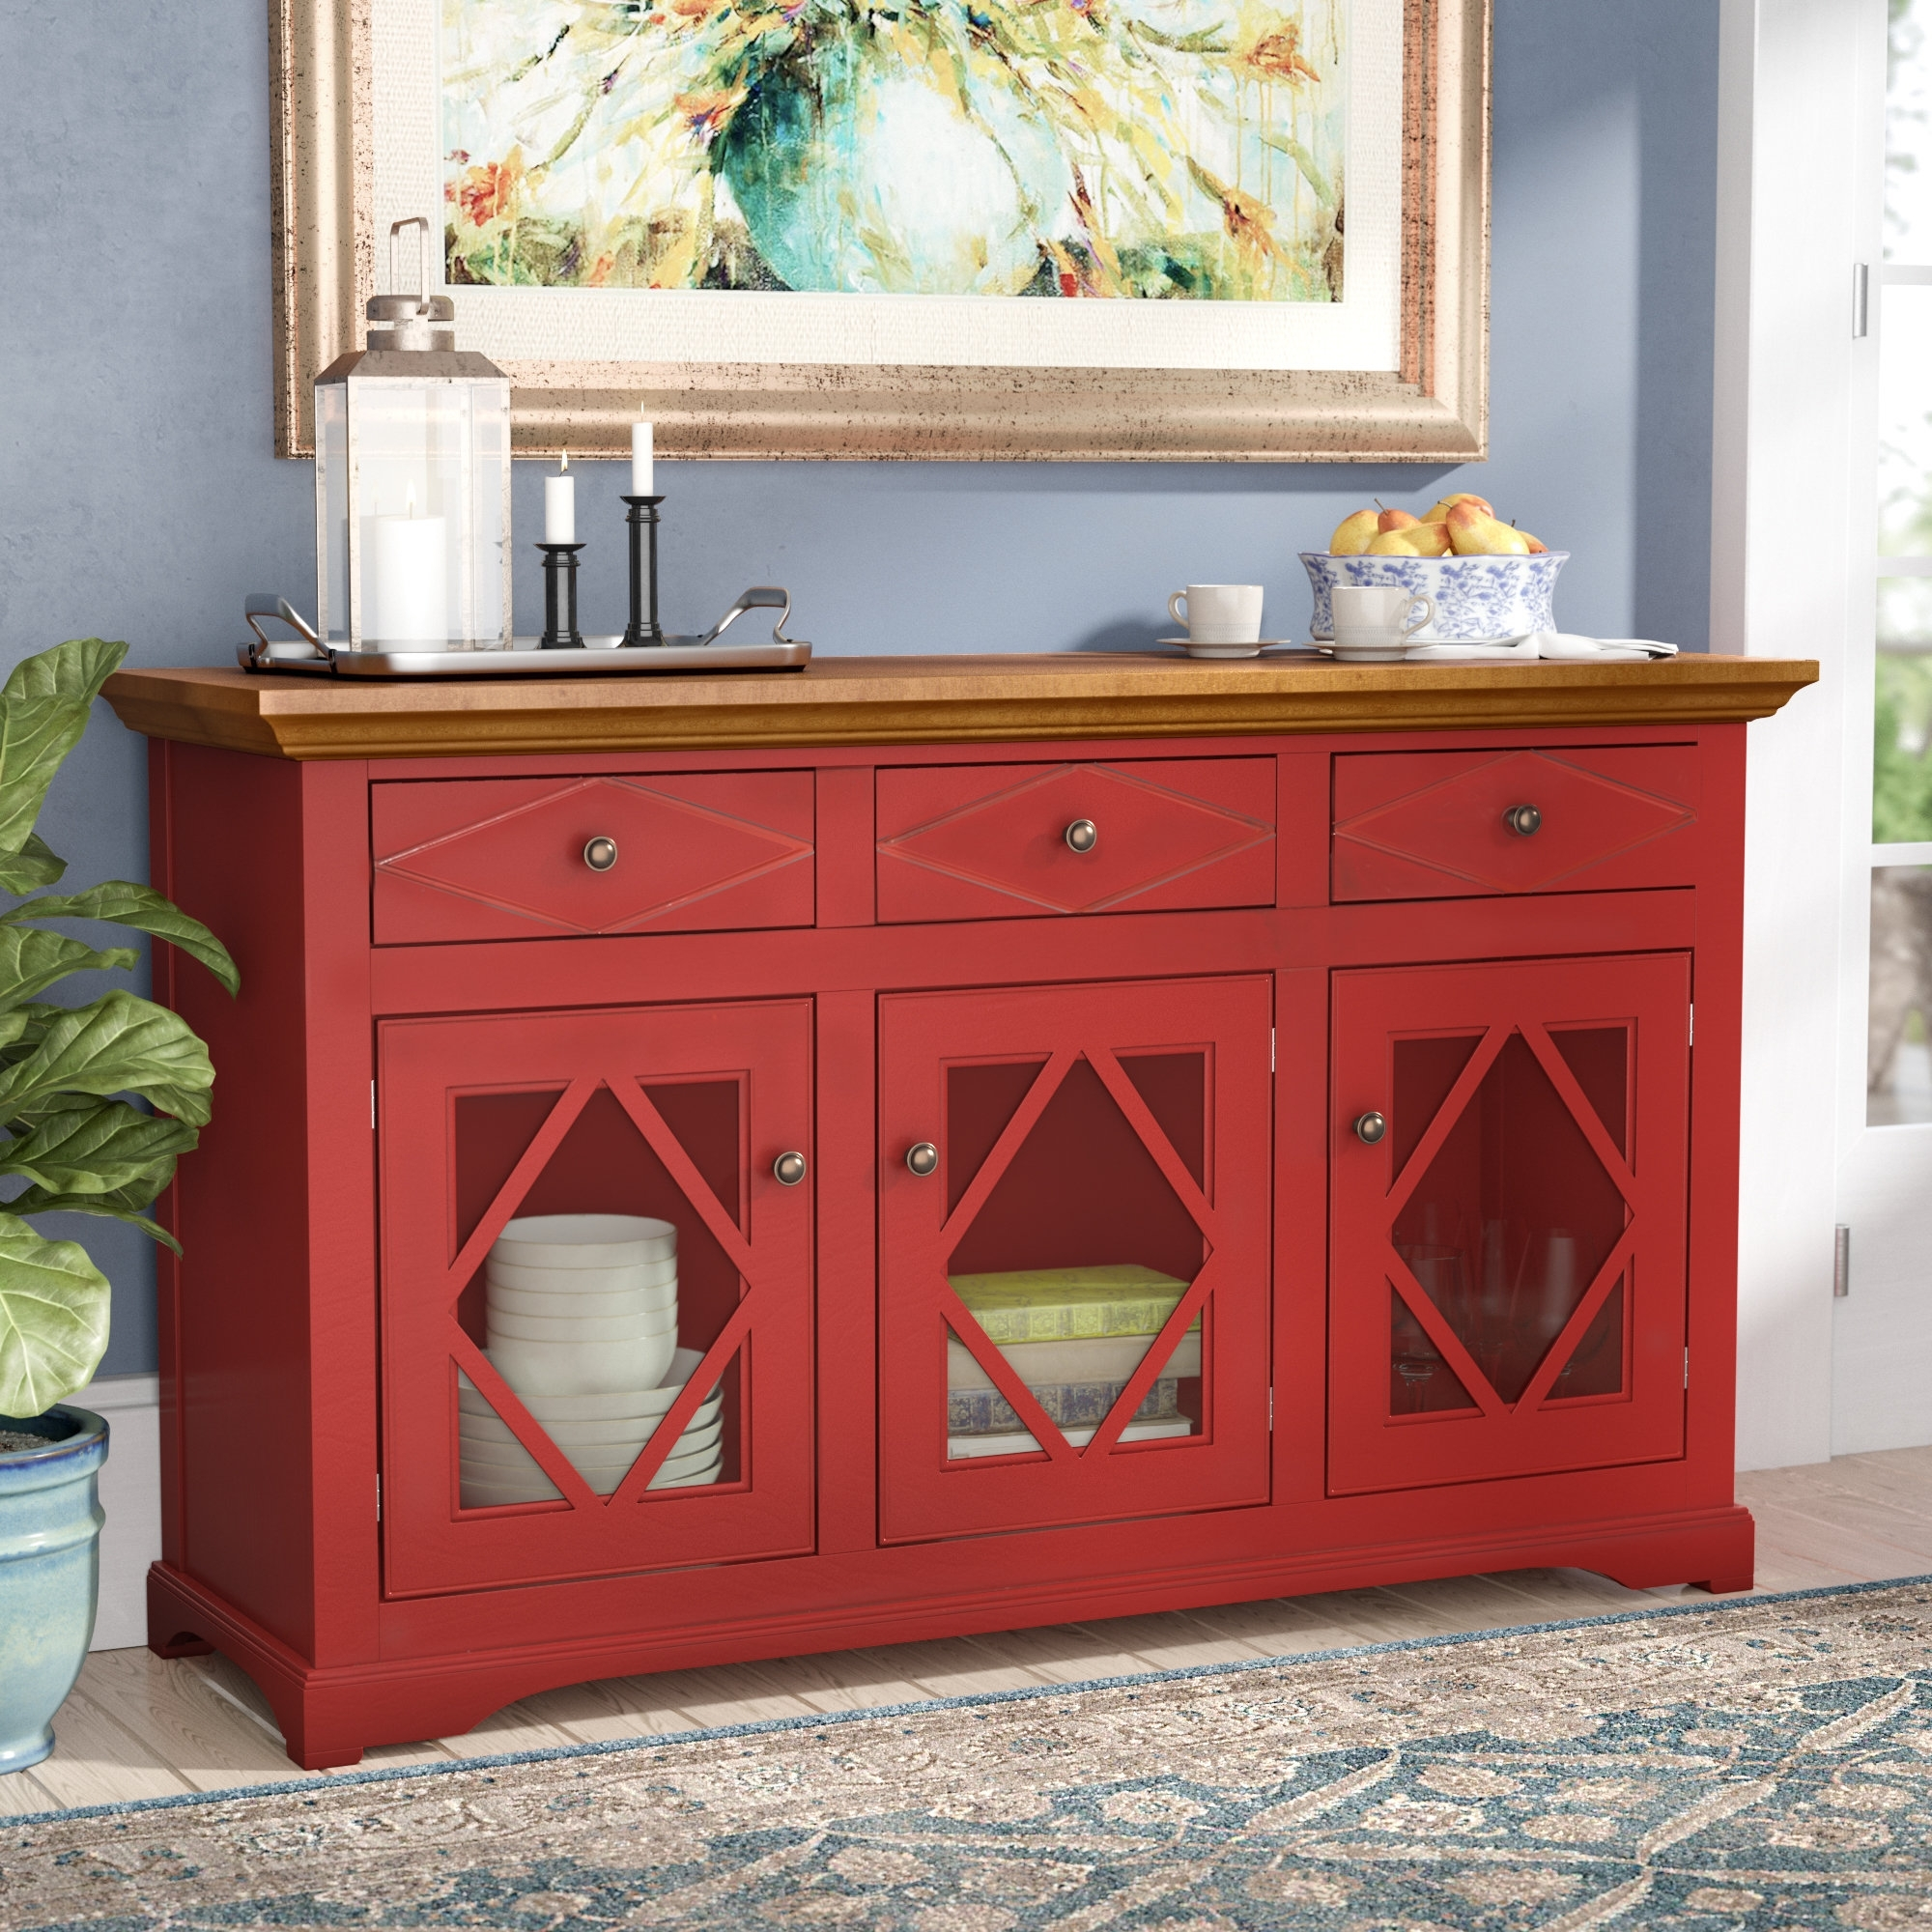 Darby Home Co Blackwater Sideboard & Reviews | Wayfair for Corrugated Natural 6-Door Sideboards (Image 6 of 30)